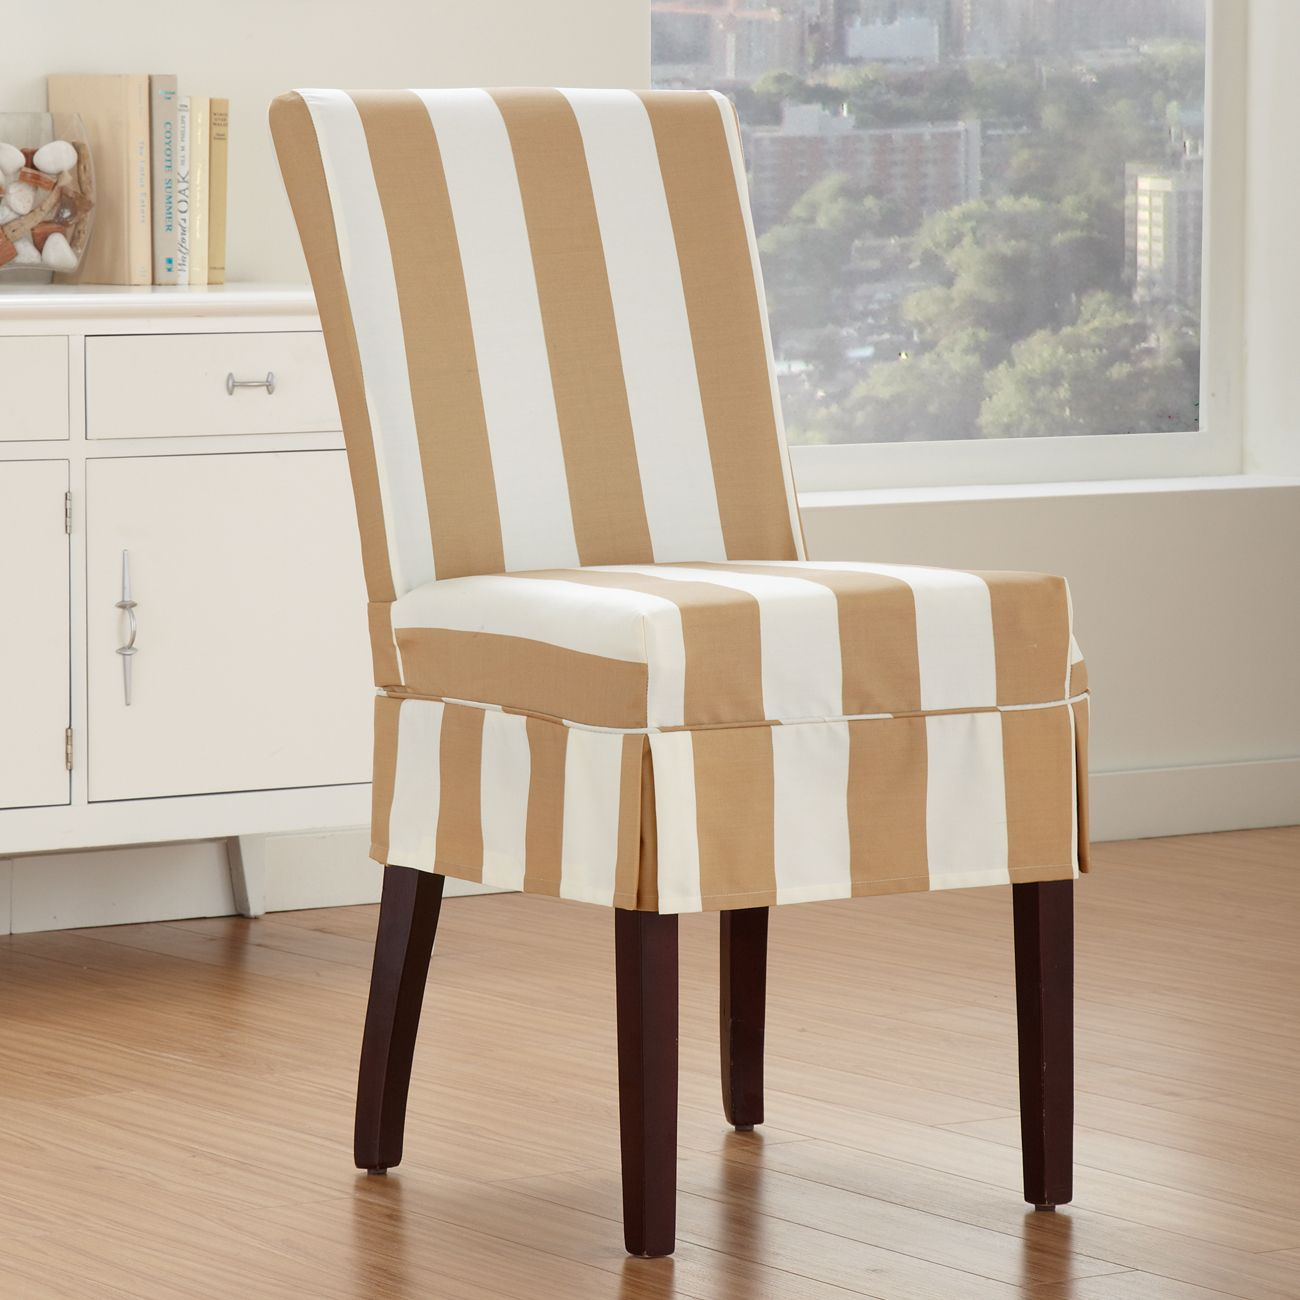 dining chairs | Upholstery Decor | Pinterest | Cover design ...